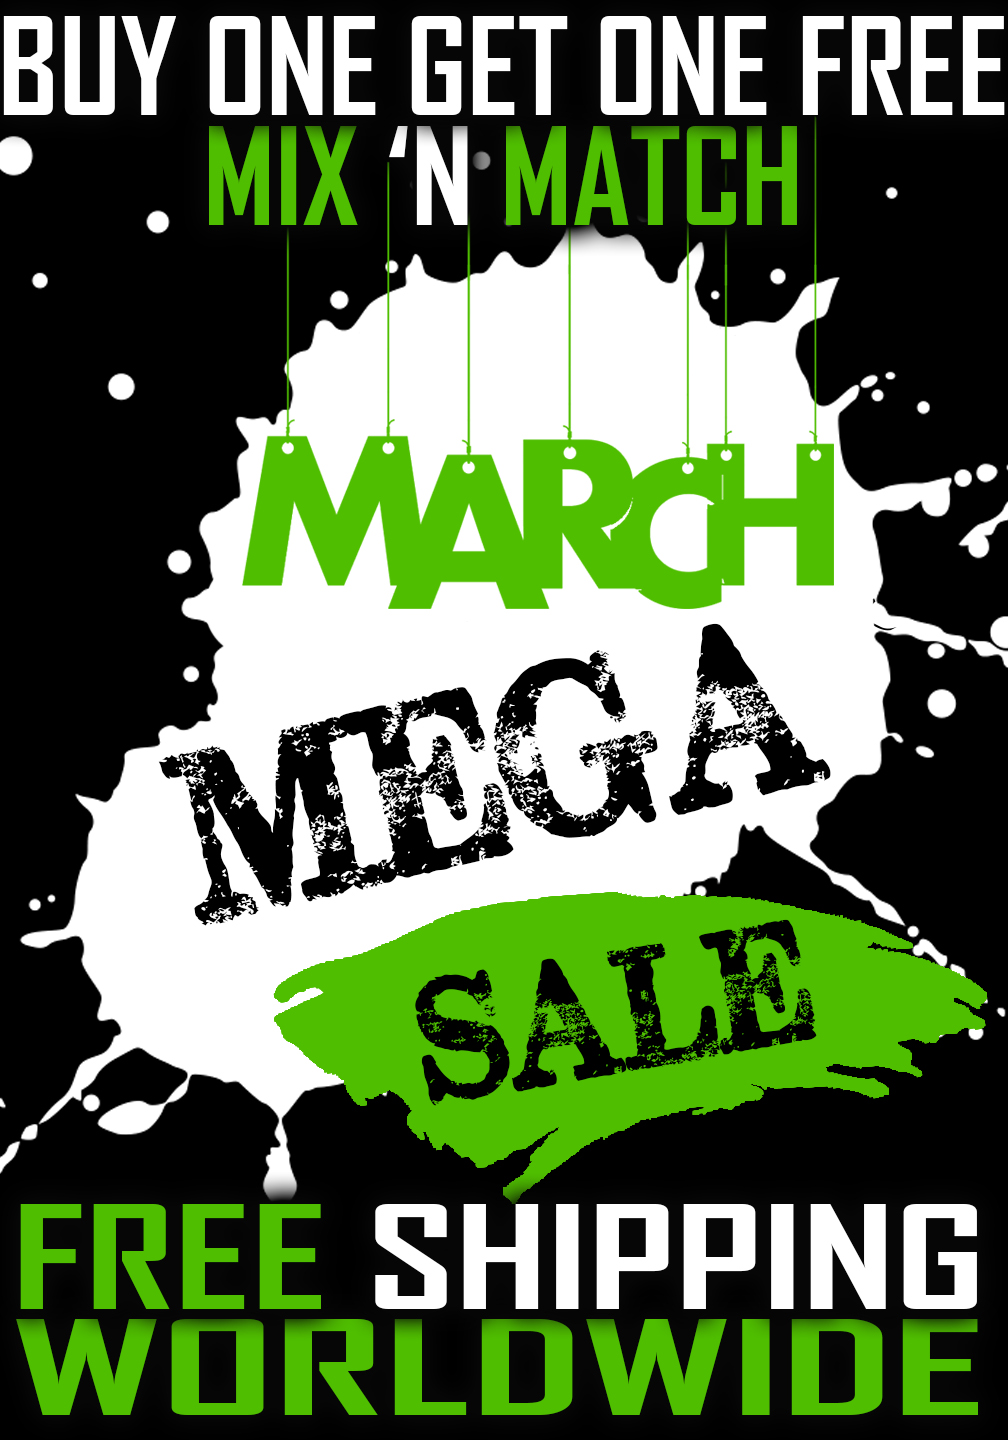 march-mega-sale-free-shipping-bogo-2020.jpg